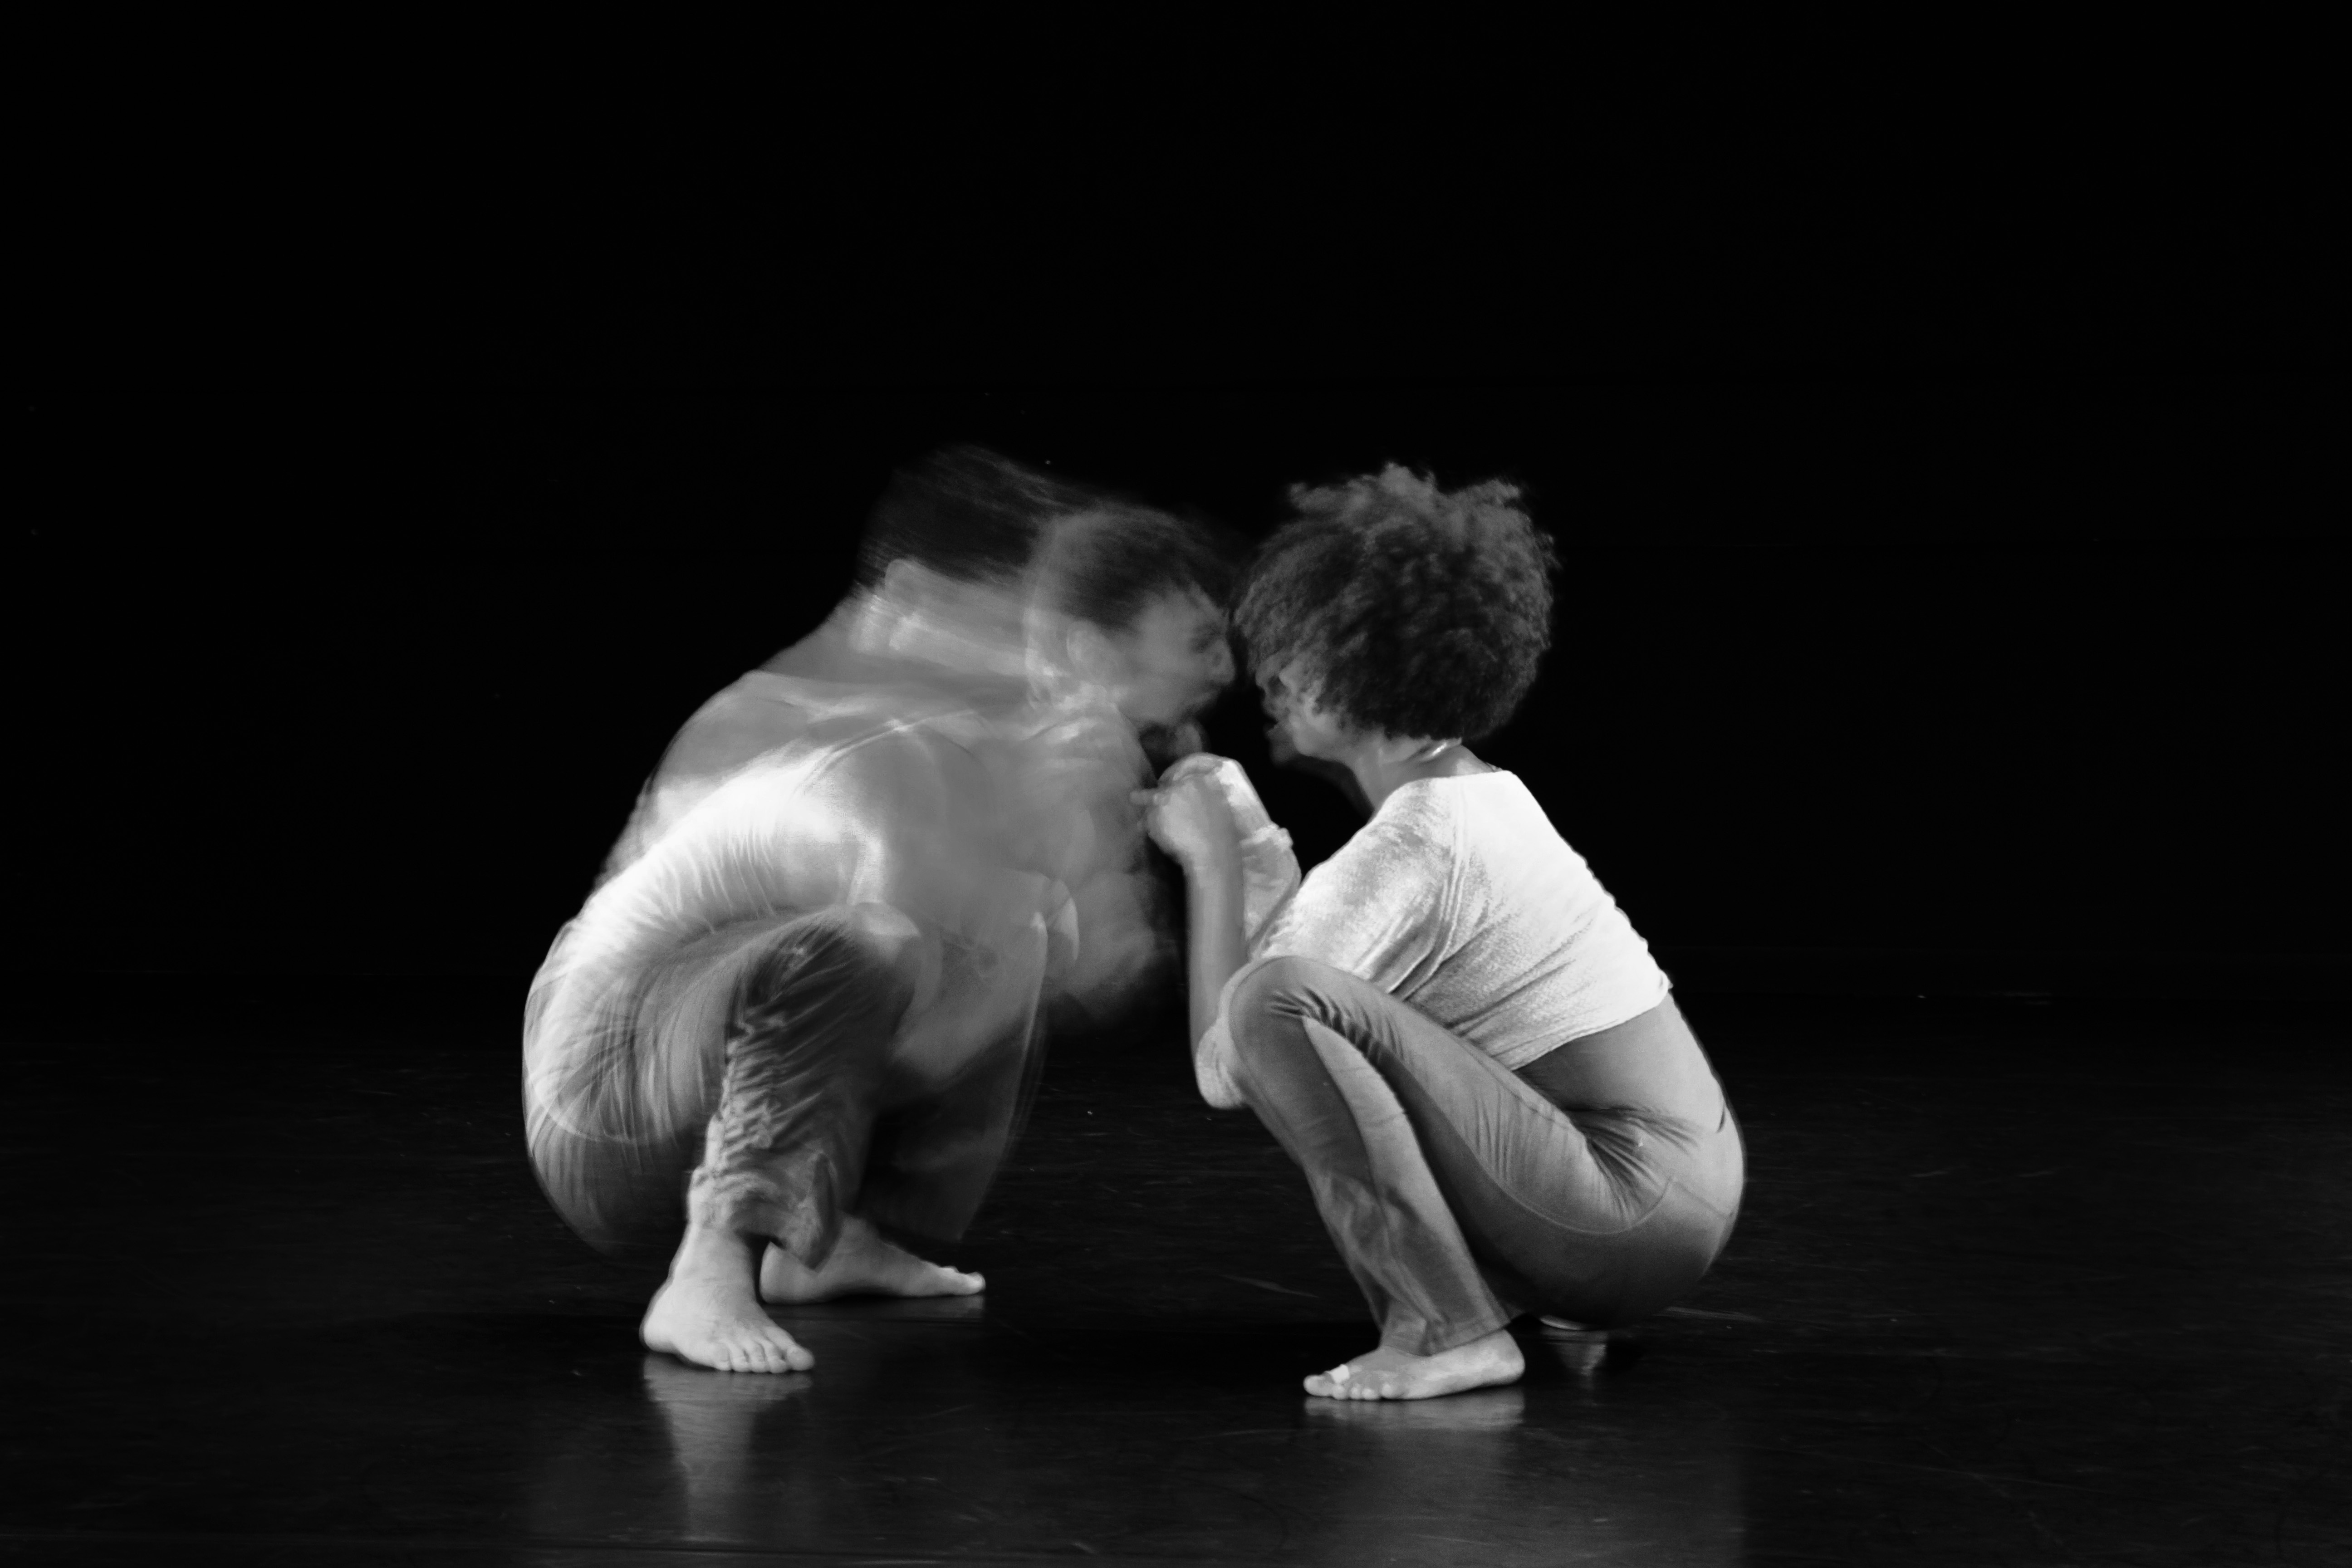 two performers crouching